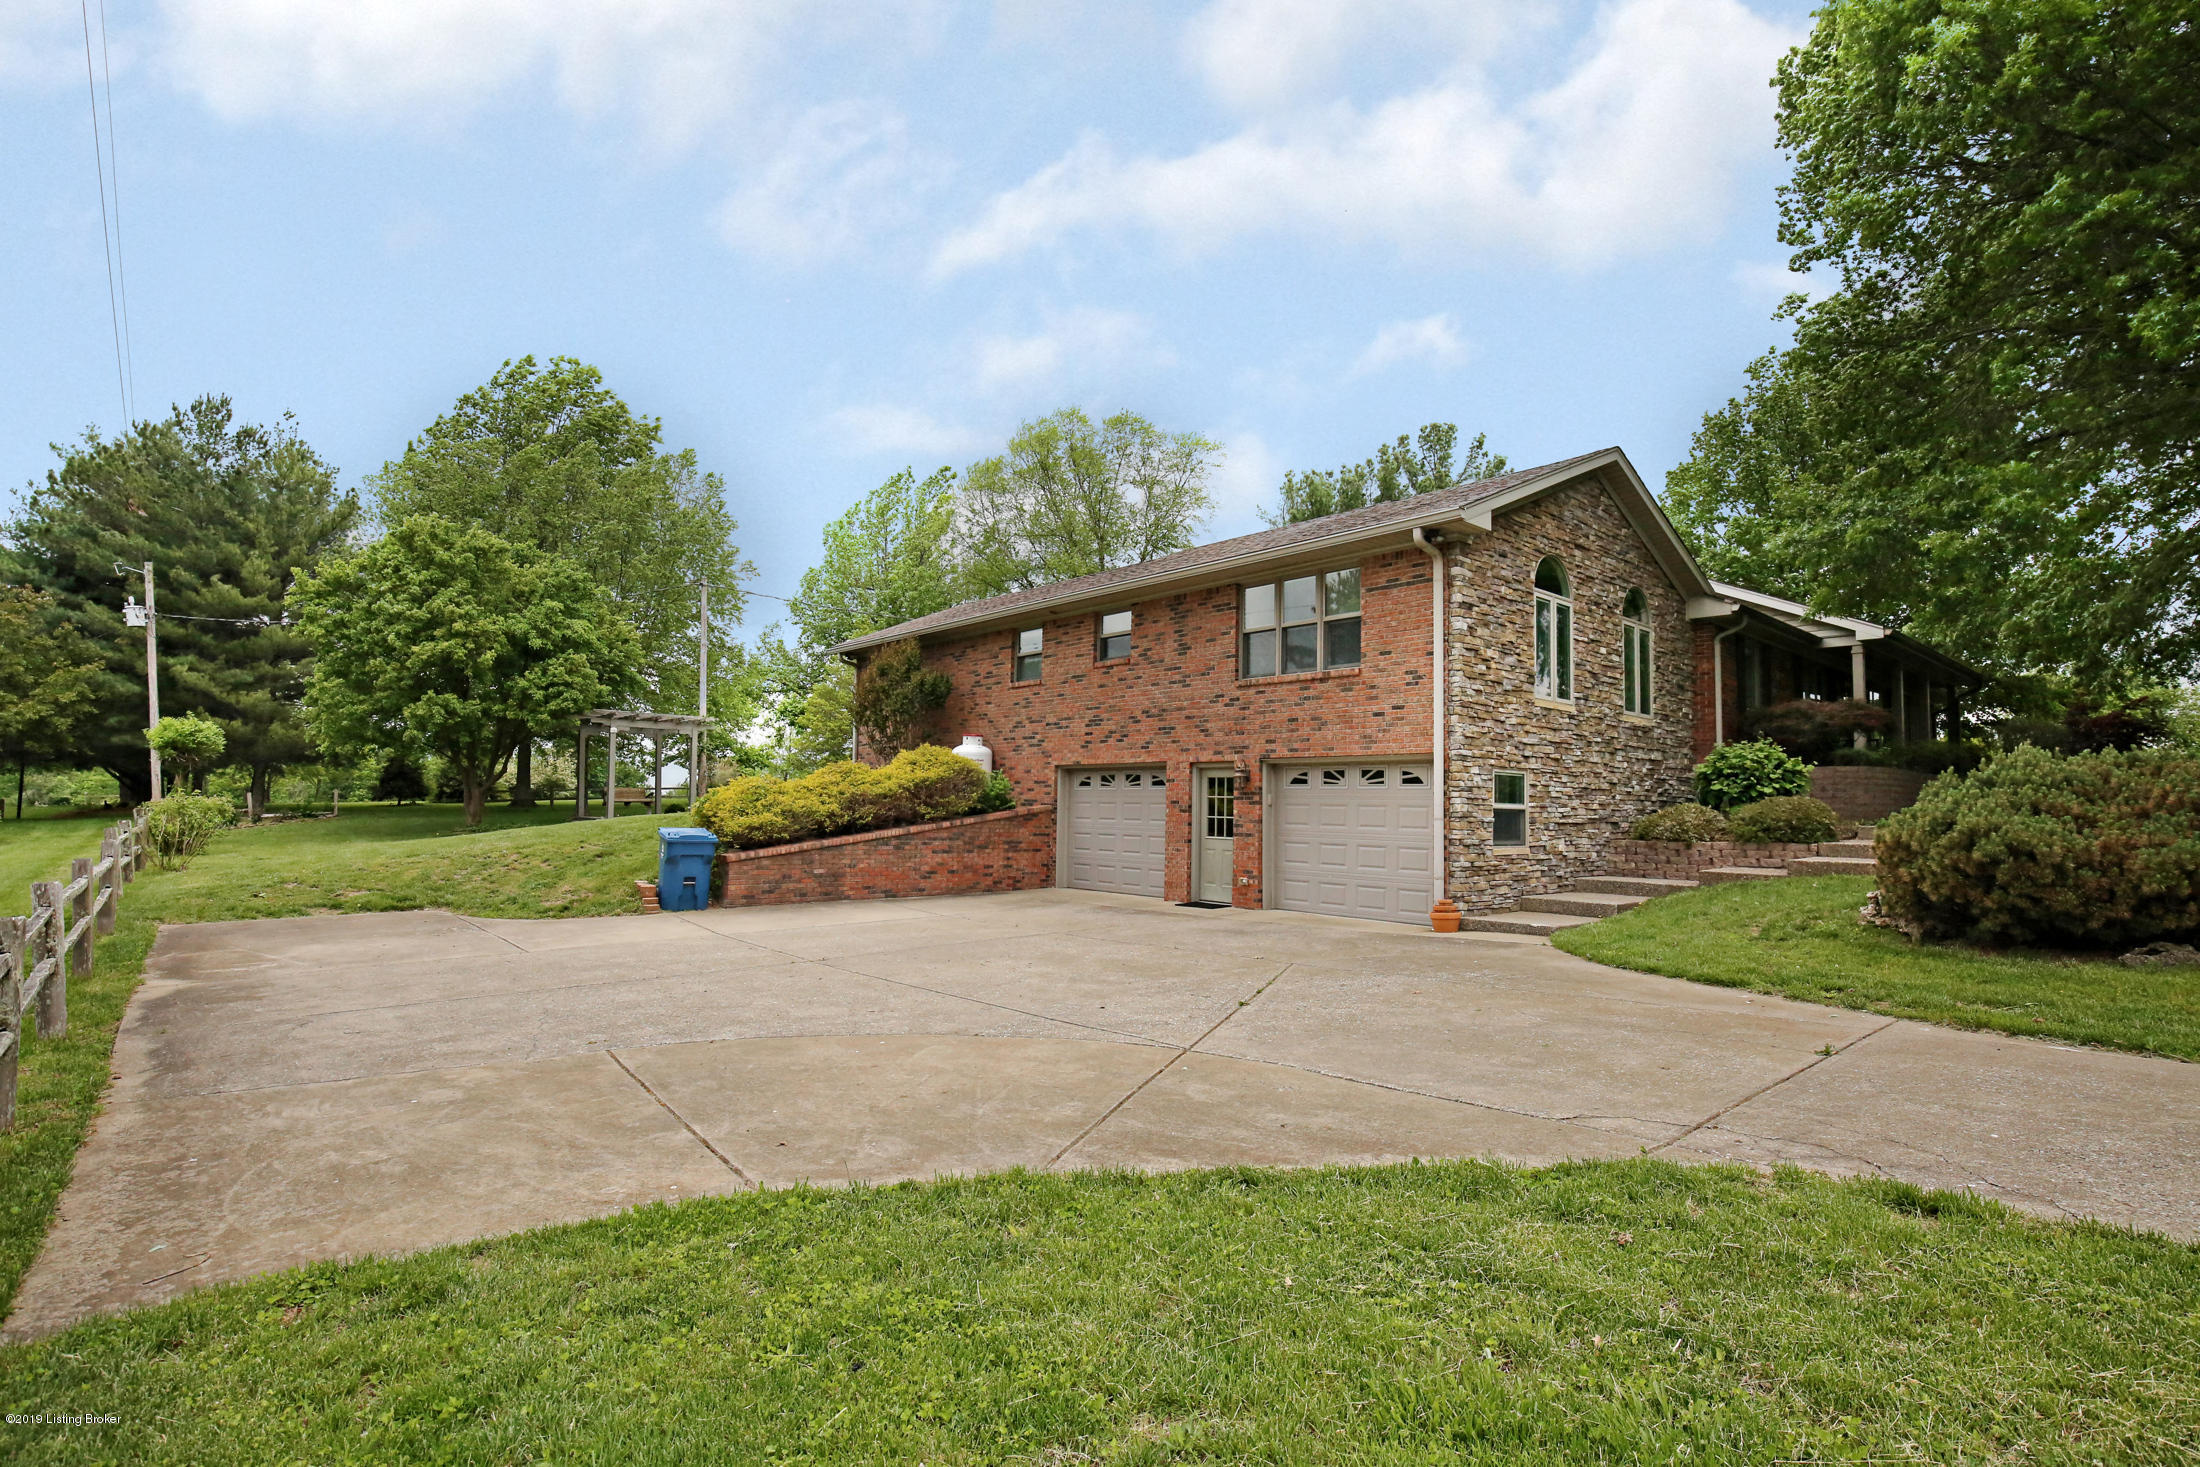 5228 Orphan Ln, Shelbyville, Kentucky 40065, 4 Bedrooms Bedrooms, 10 Rooms Rooms,3 BathroomsBathrooms,Residential,For Sale,Orphan,1531669